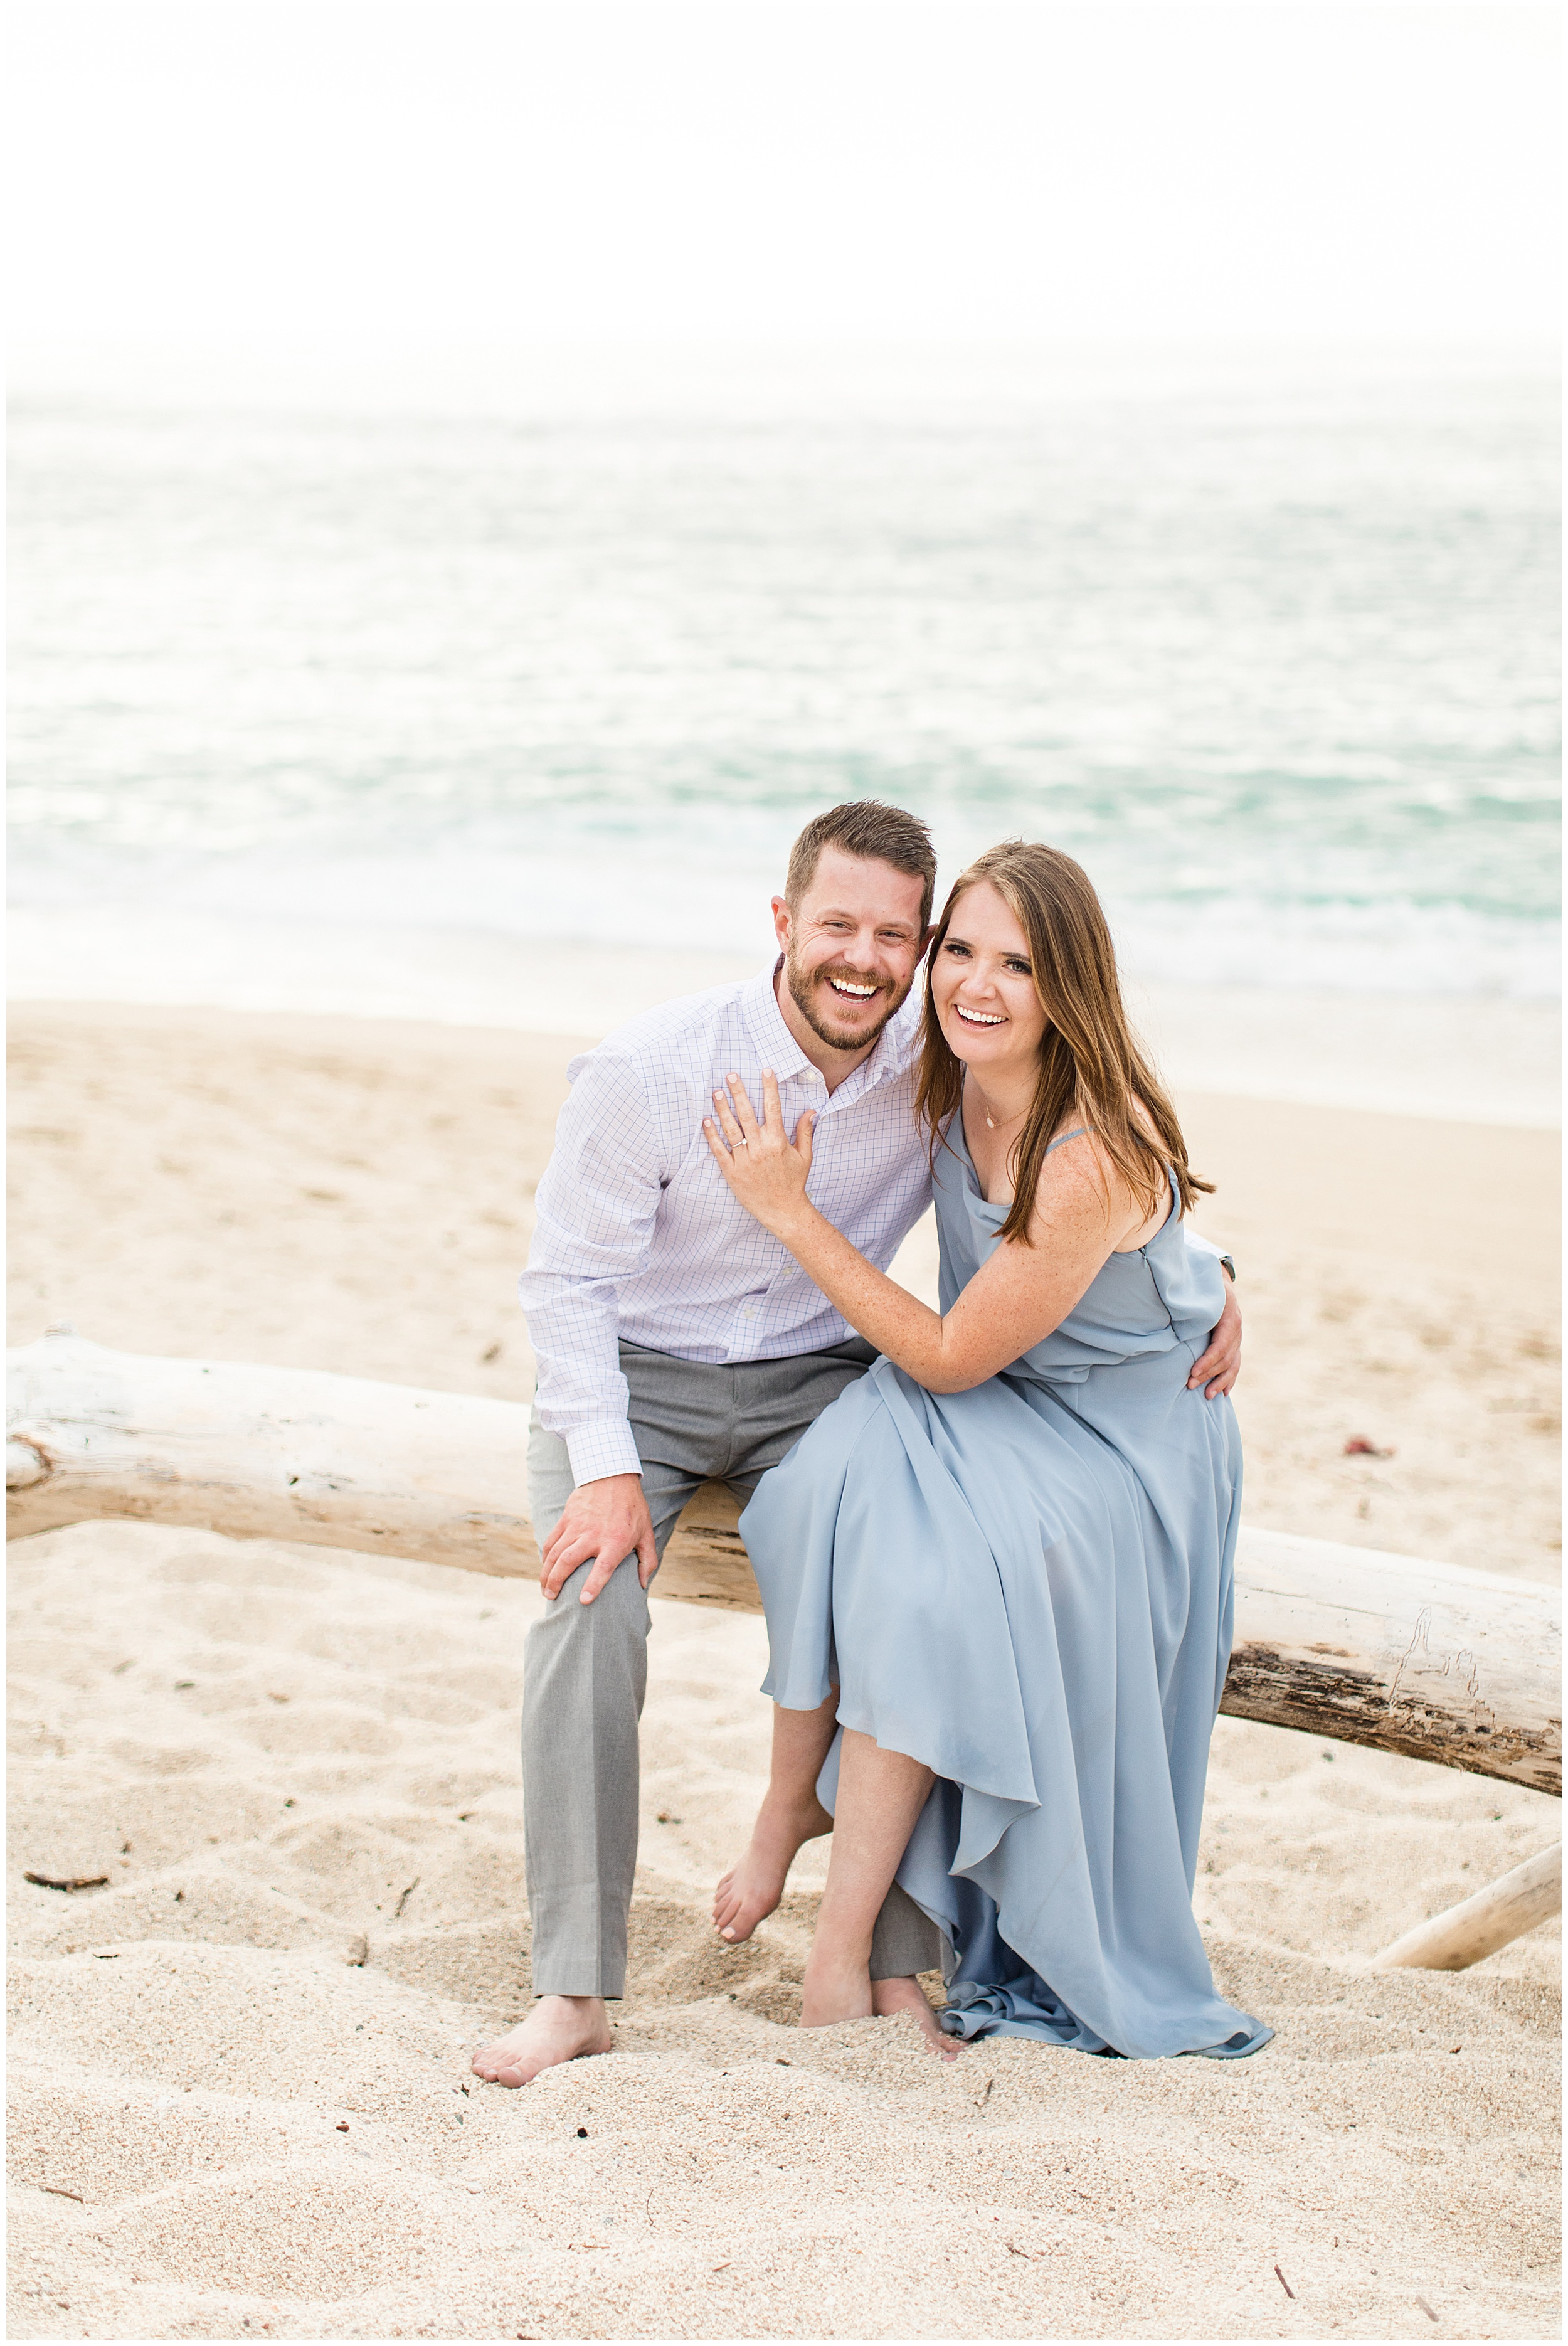 2019 carmel by the sea surprise proposal engagement session wedding photographer angela sue photography_0042.jpg